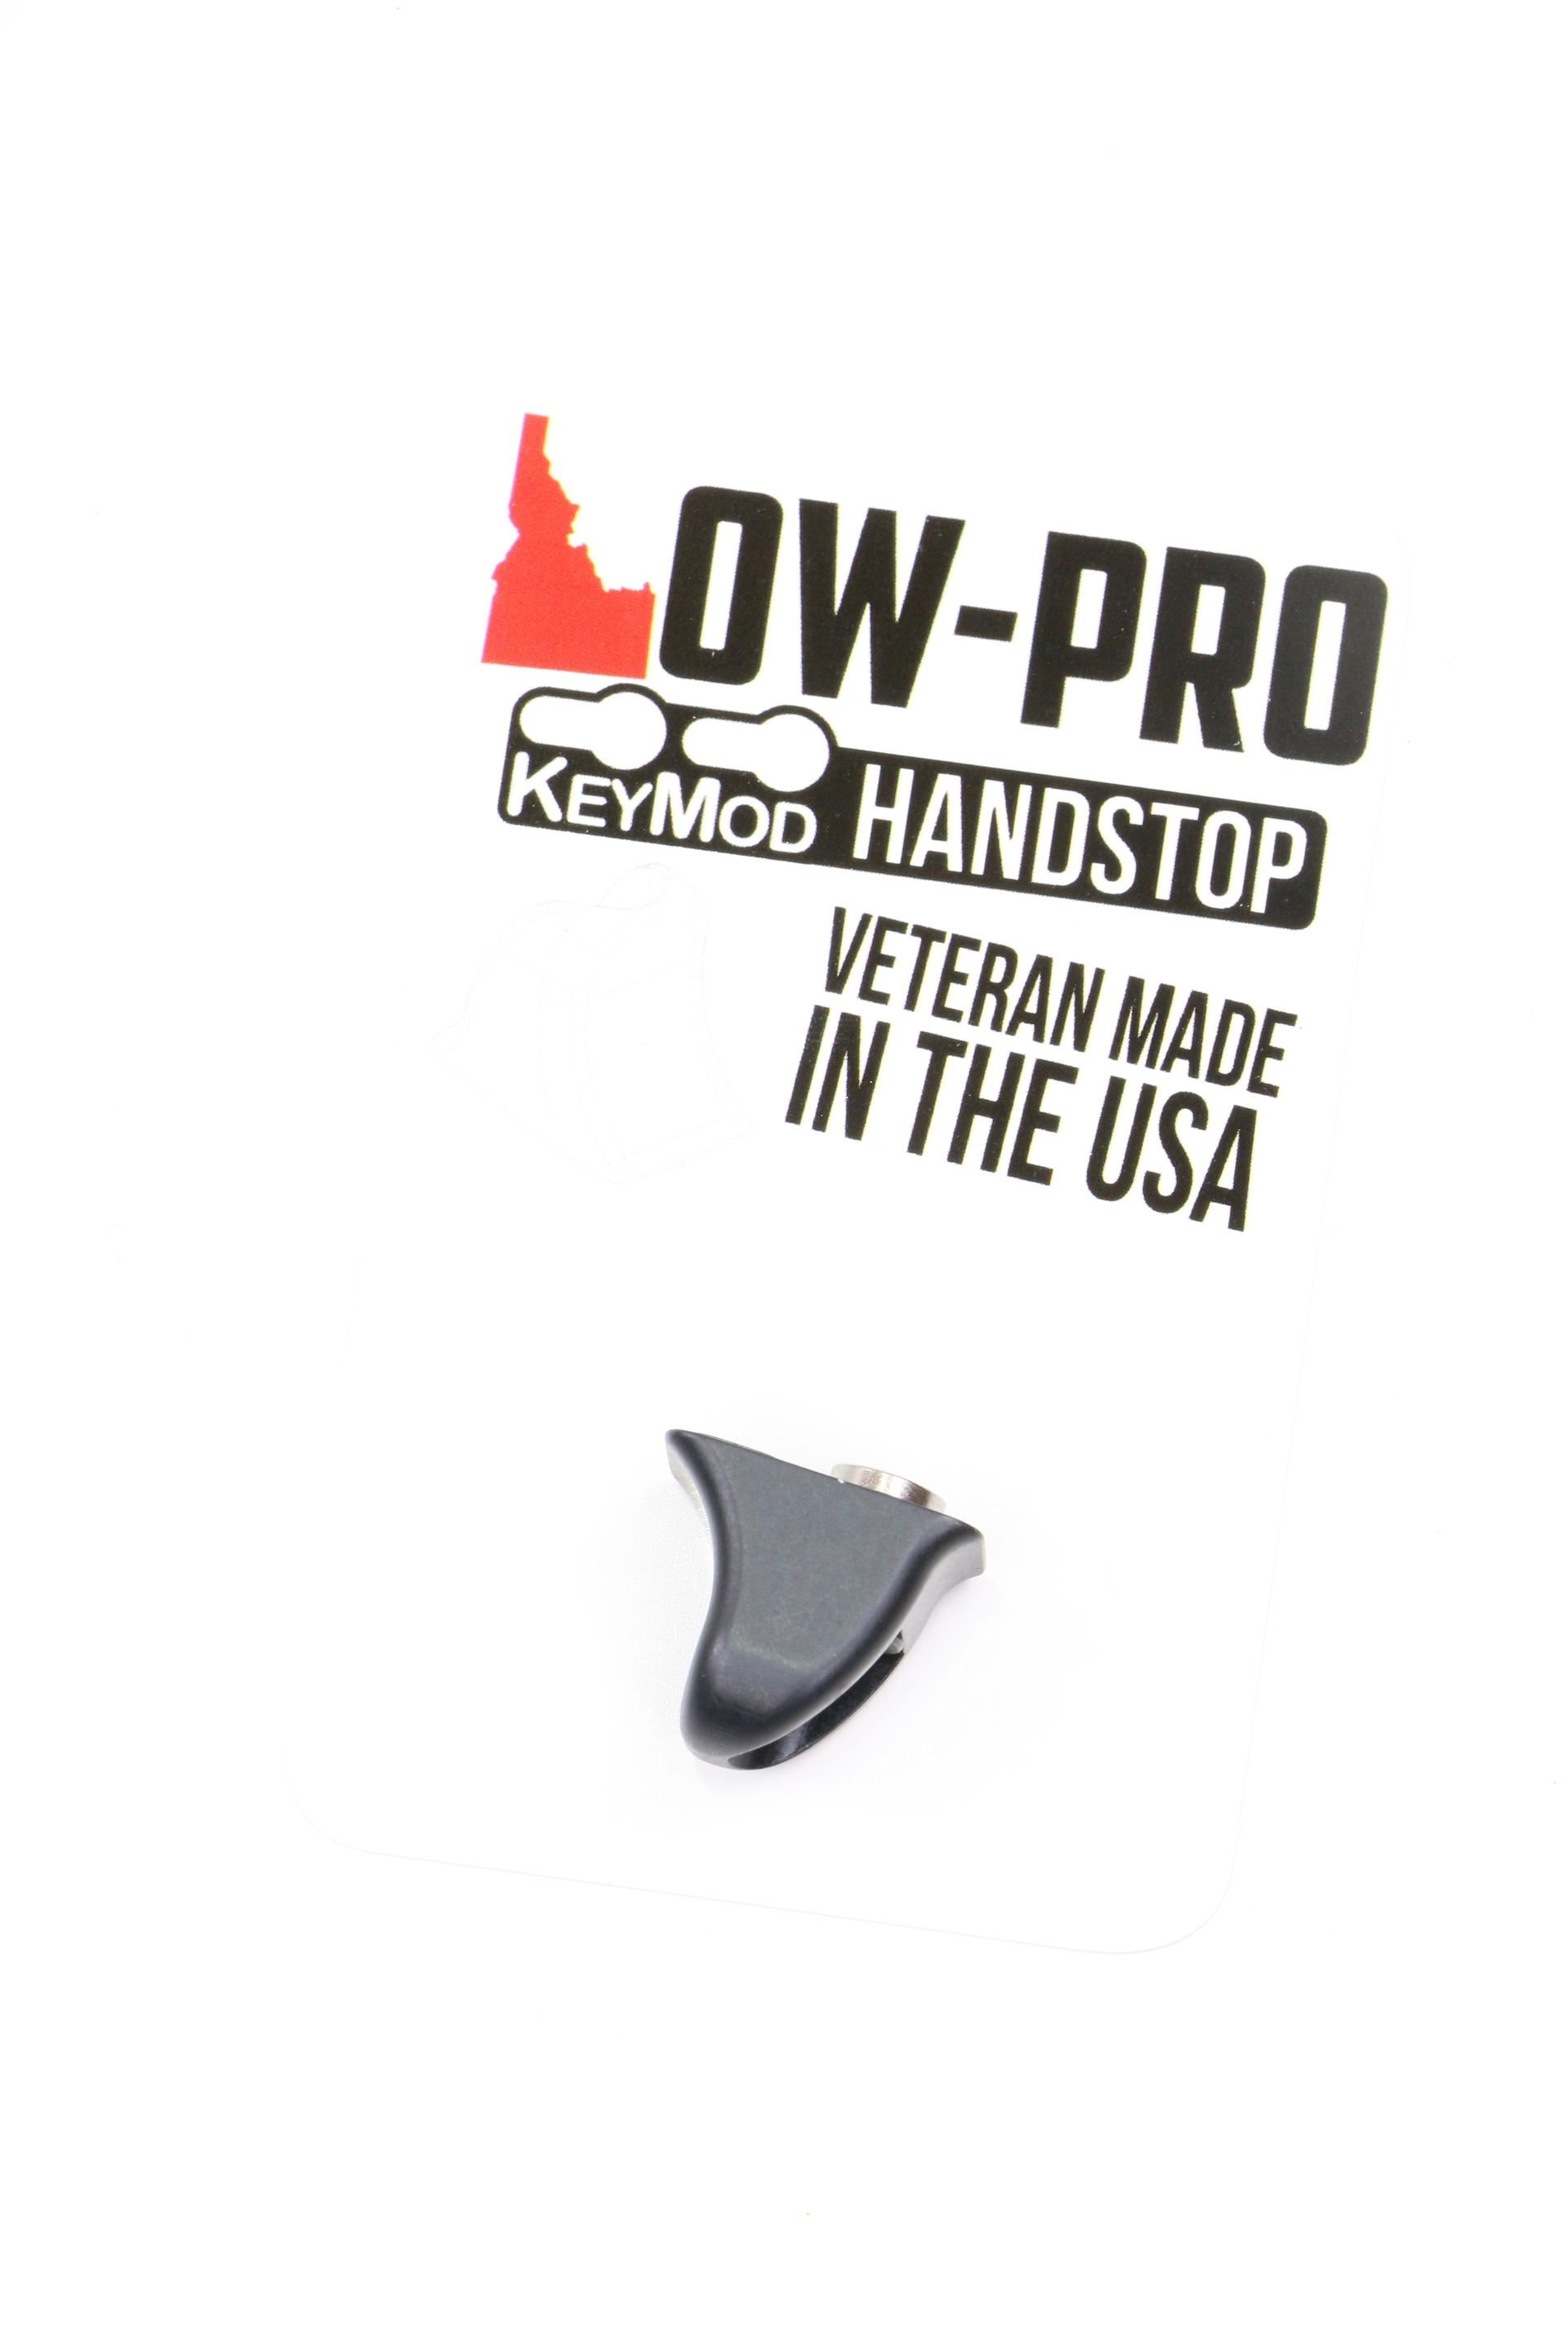 Low Pro Hand stop Veteran made